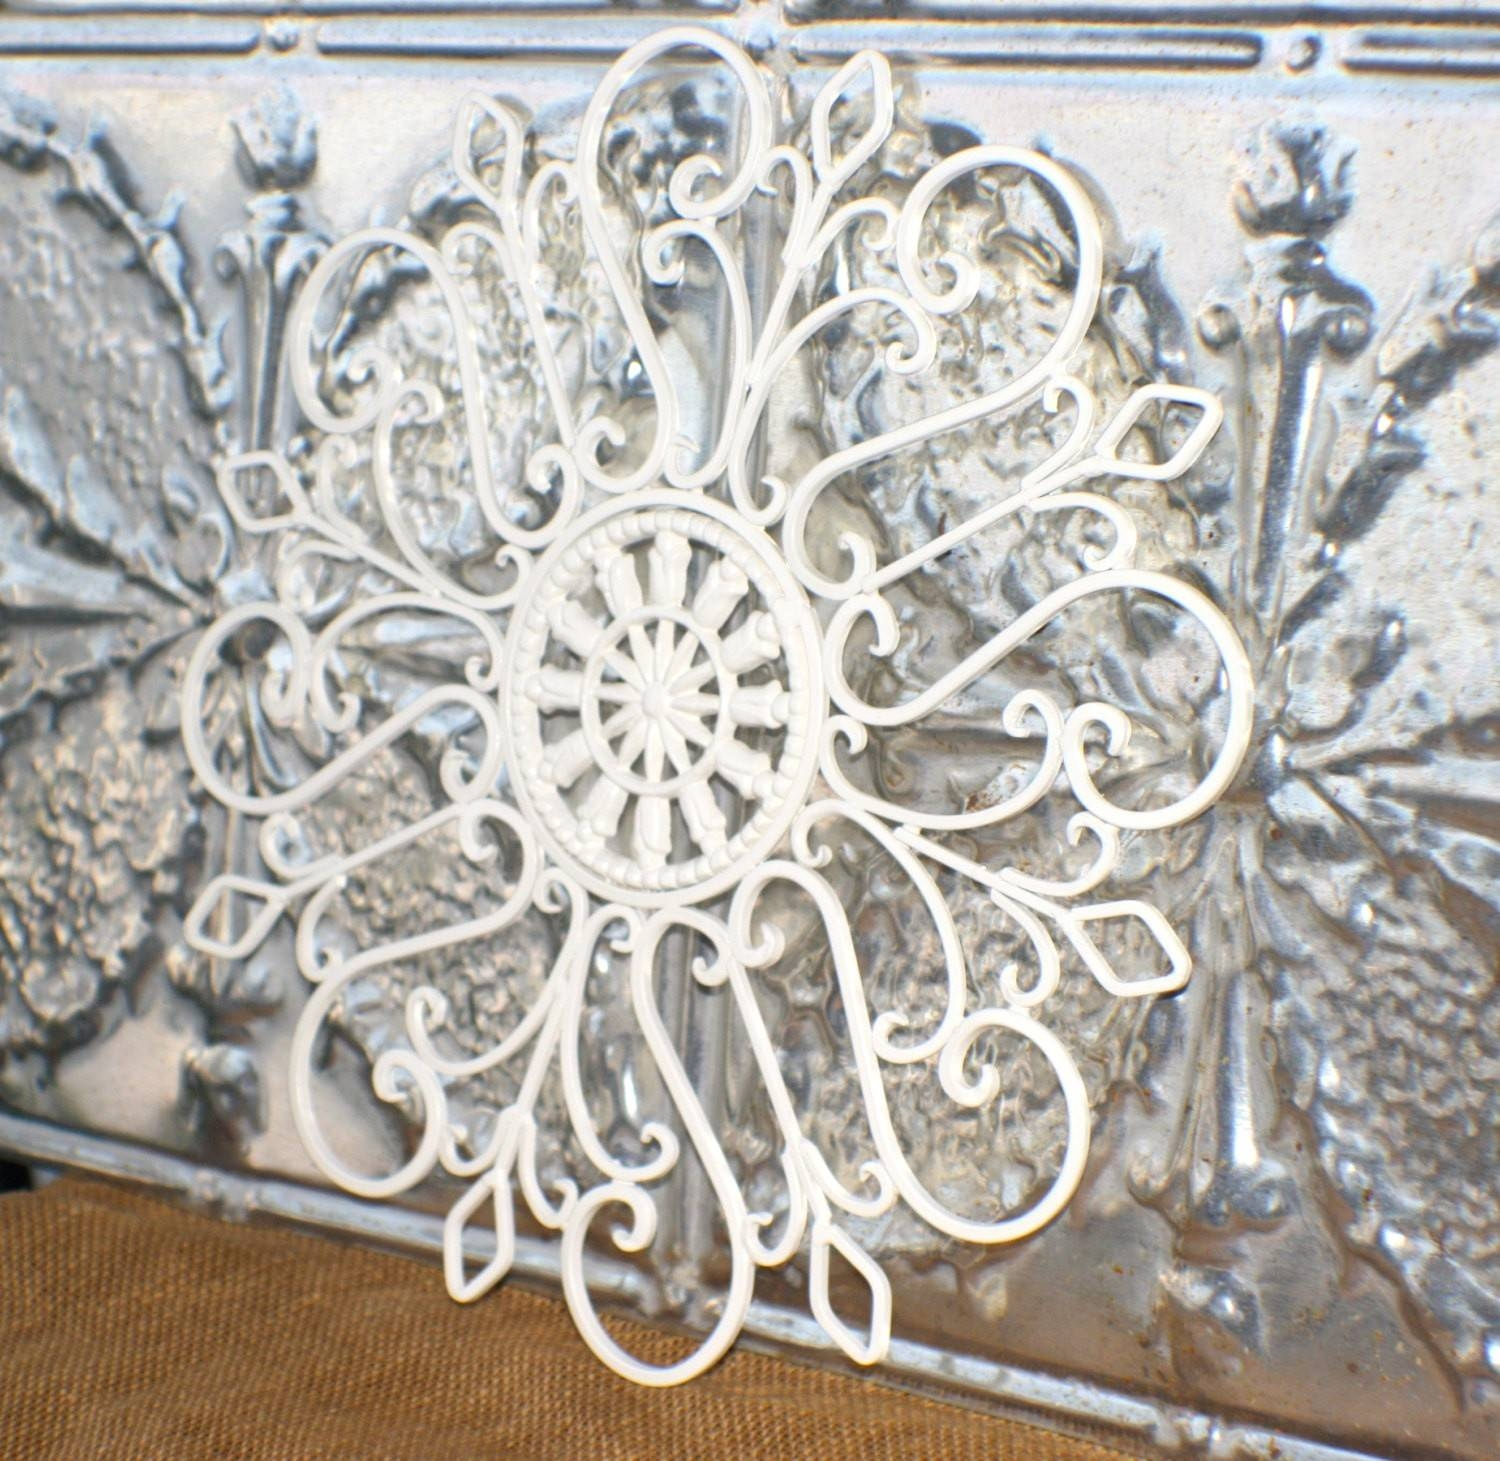 2014 Outdoor Decor Ideas – Metal Wall Art Medallion/ Creamy White Within Newest Cream Metal Wall Art (View 1 of 20)